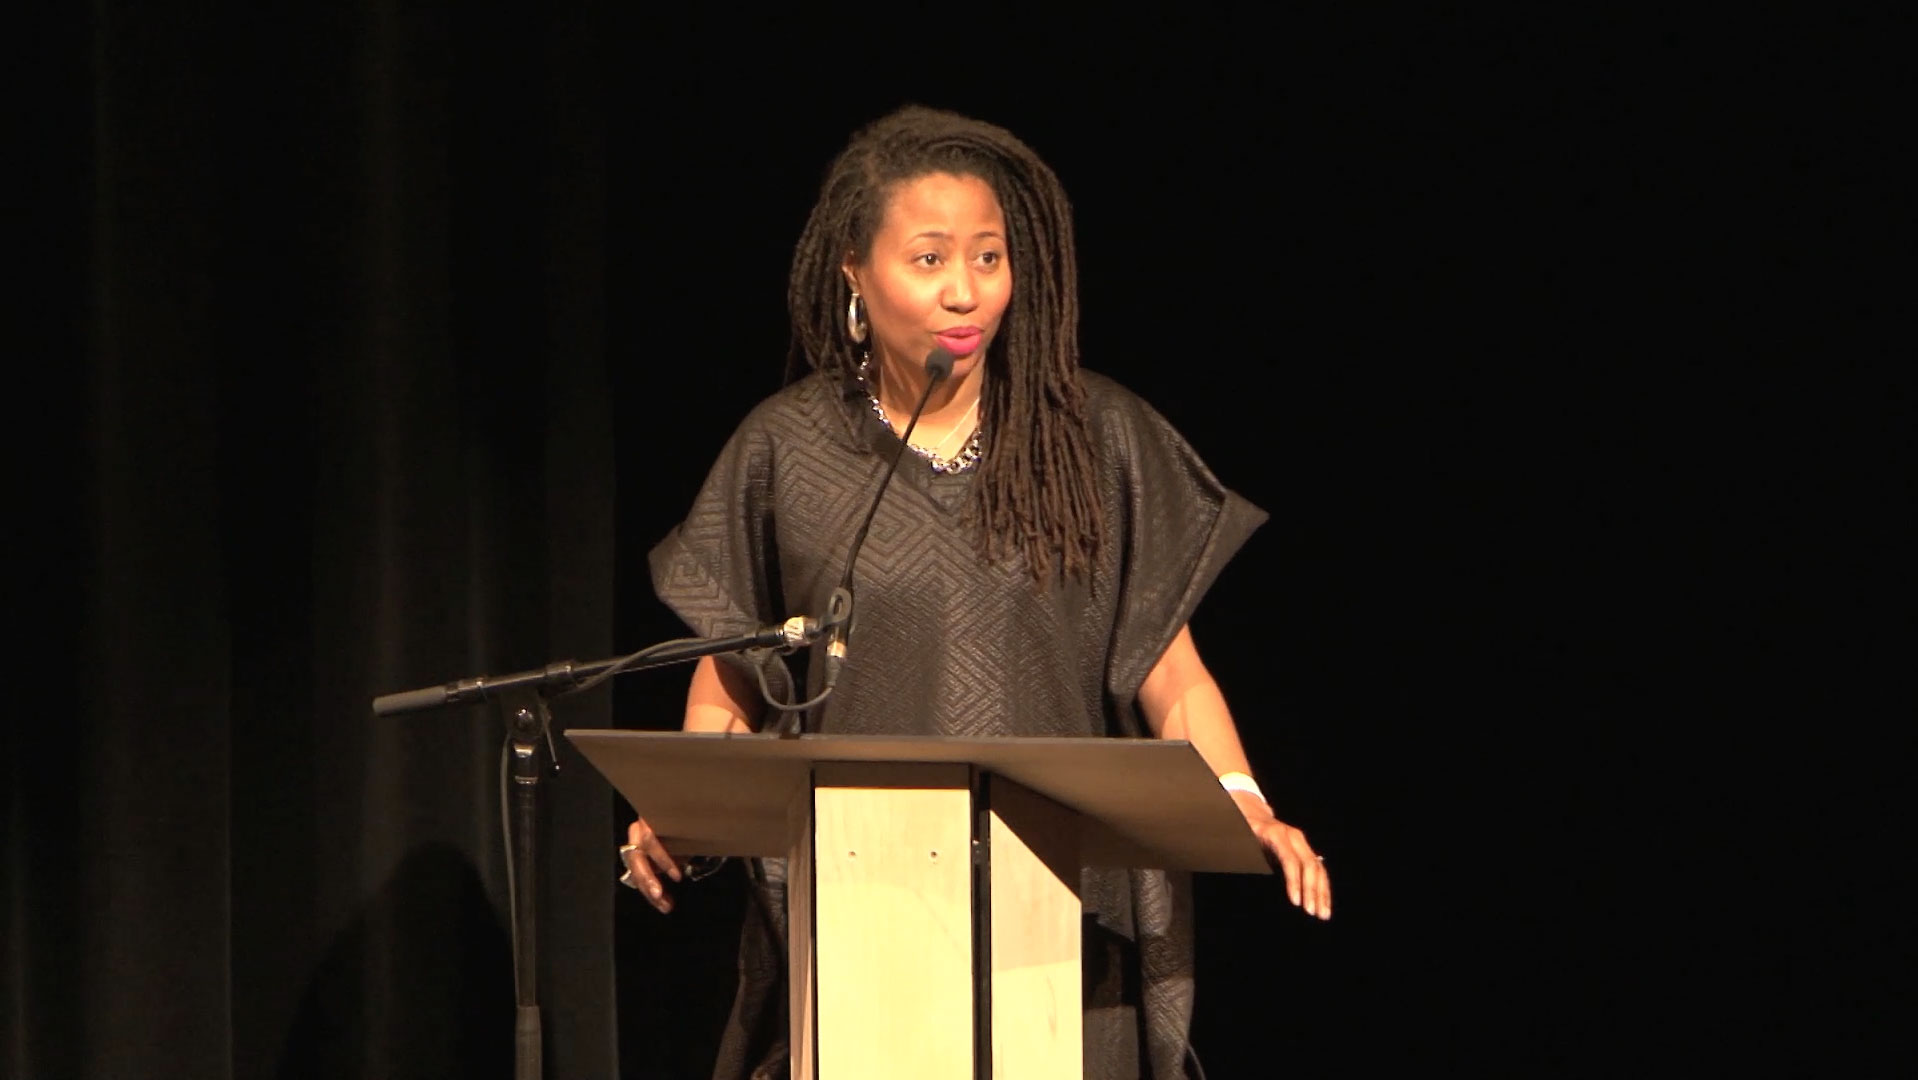 Video still of Nantali Indongo from The Walrus Talks How to Animate a City